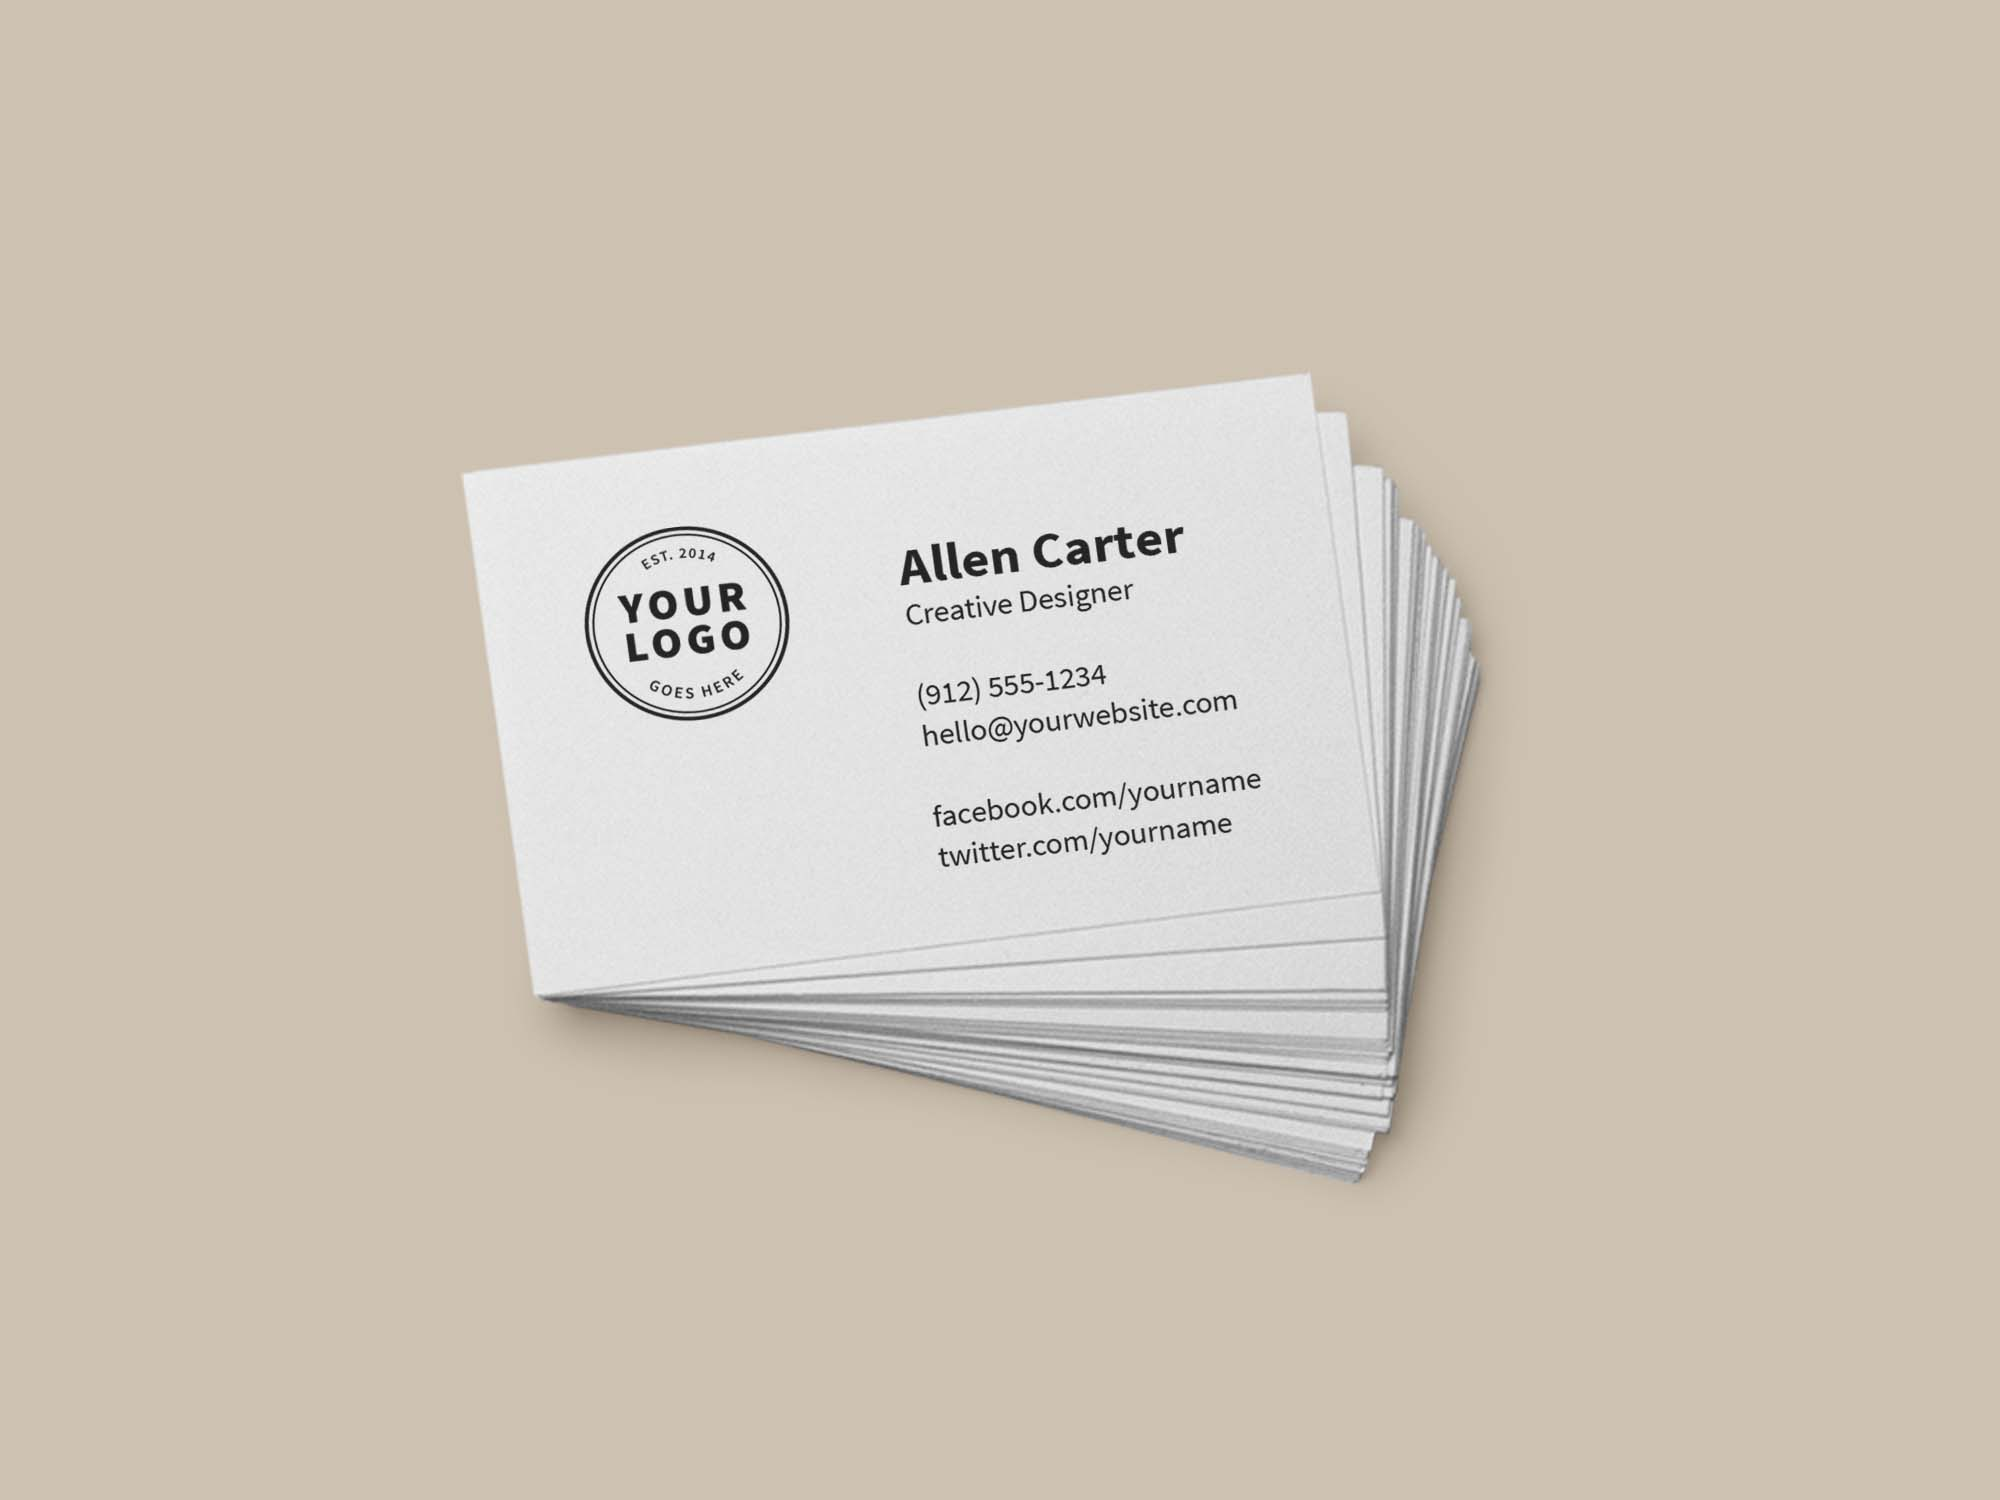 Branding and Identity Mockup - Business Card